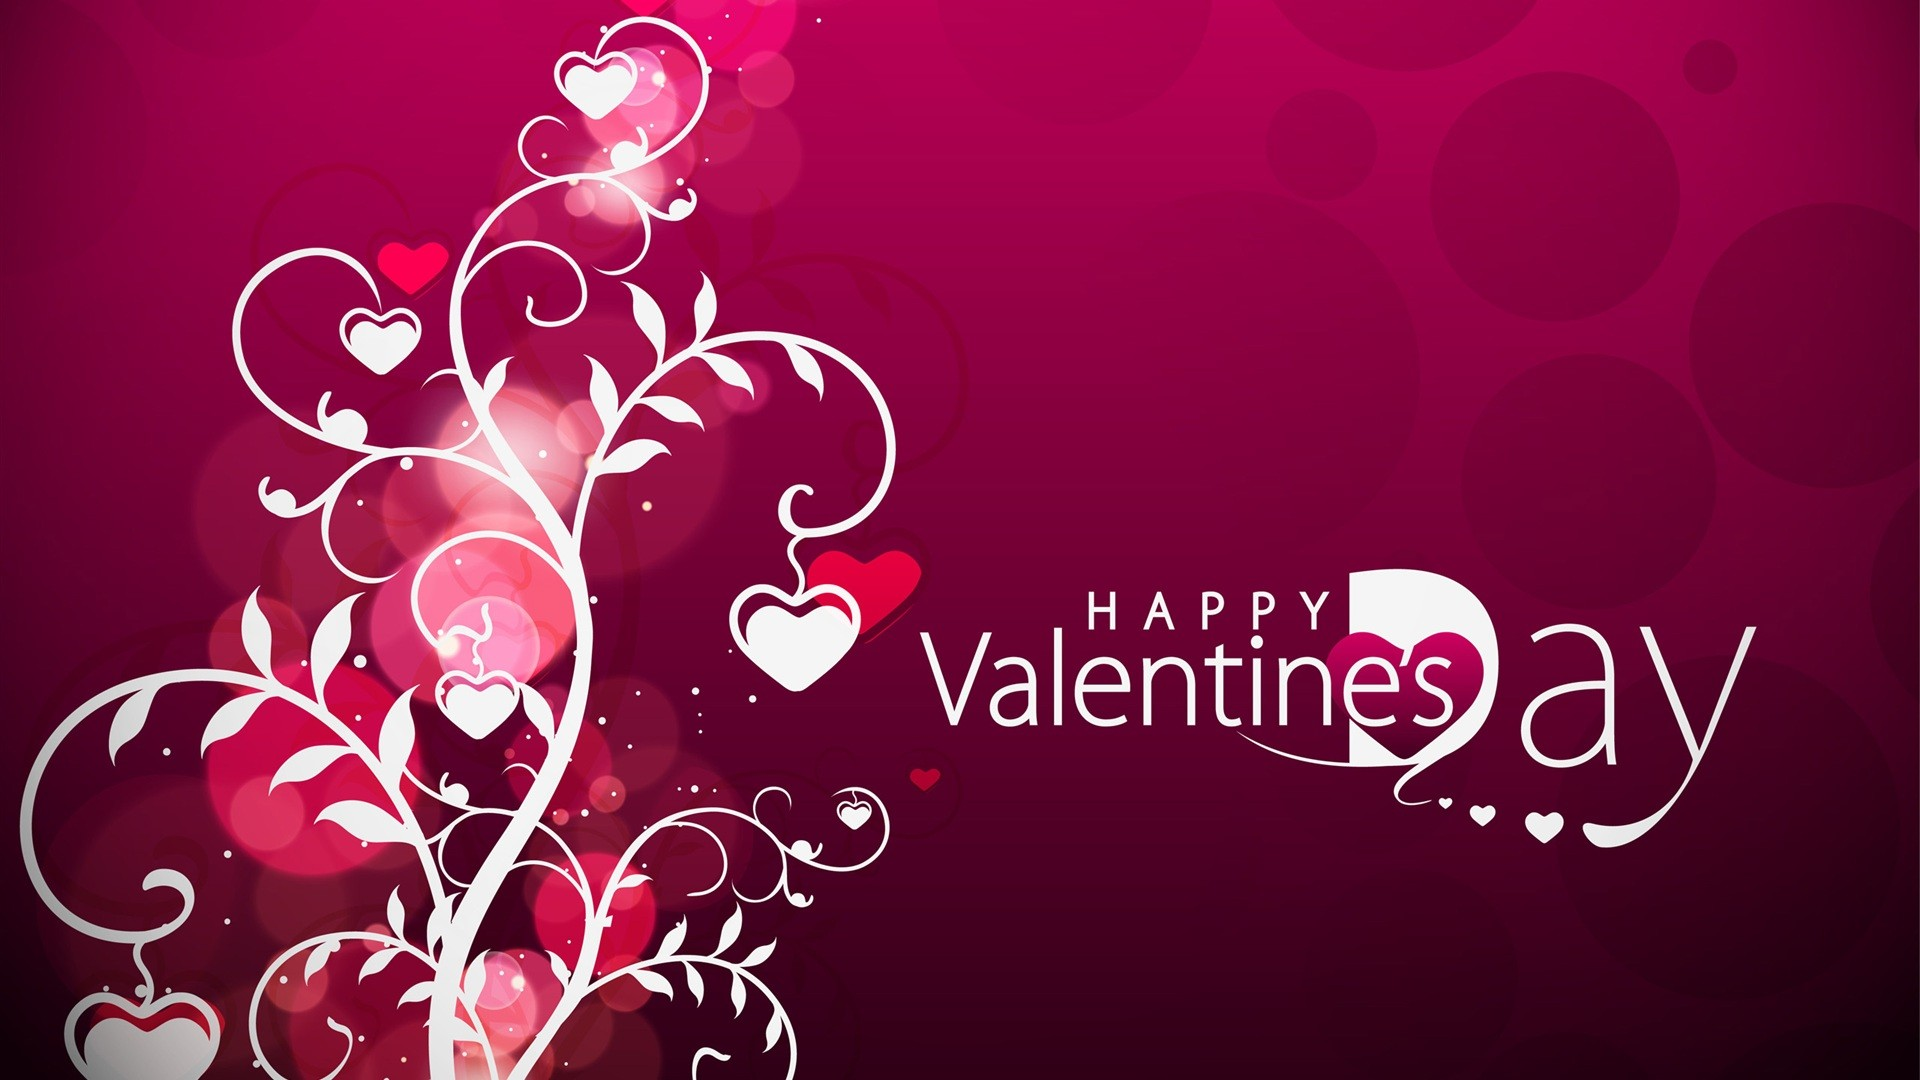 Awsome Valentines Heart Wallpaper 90 Magazine 1920x1080